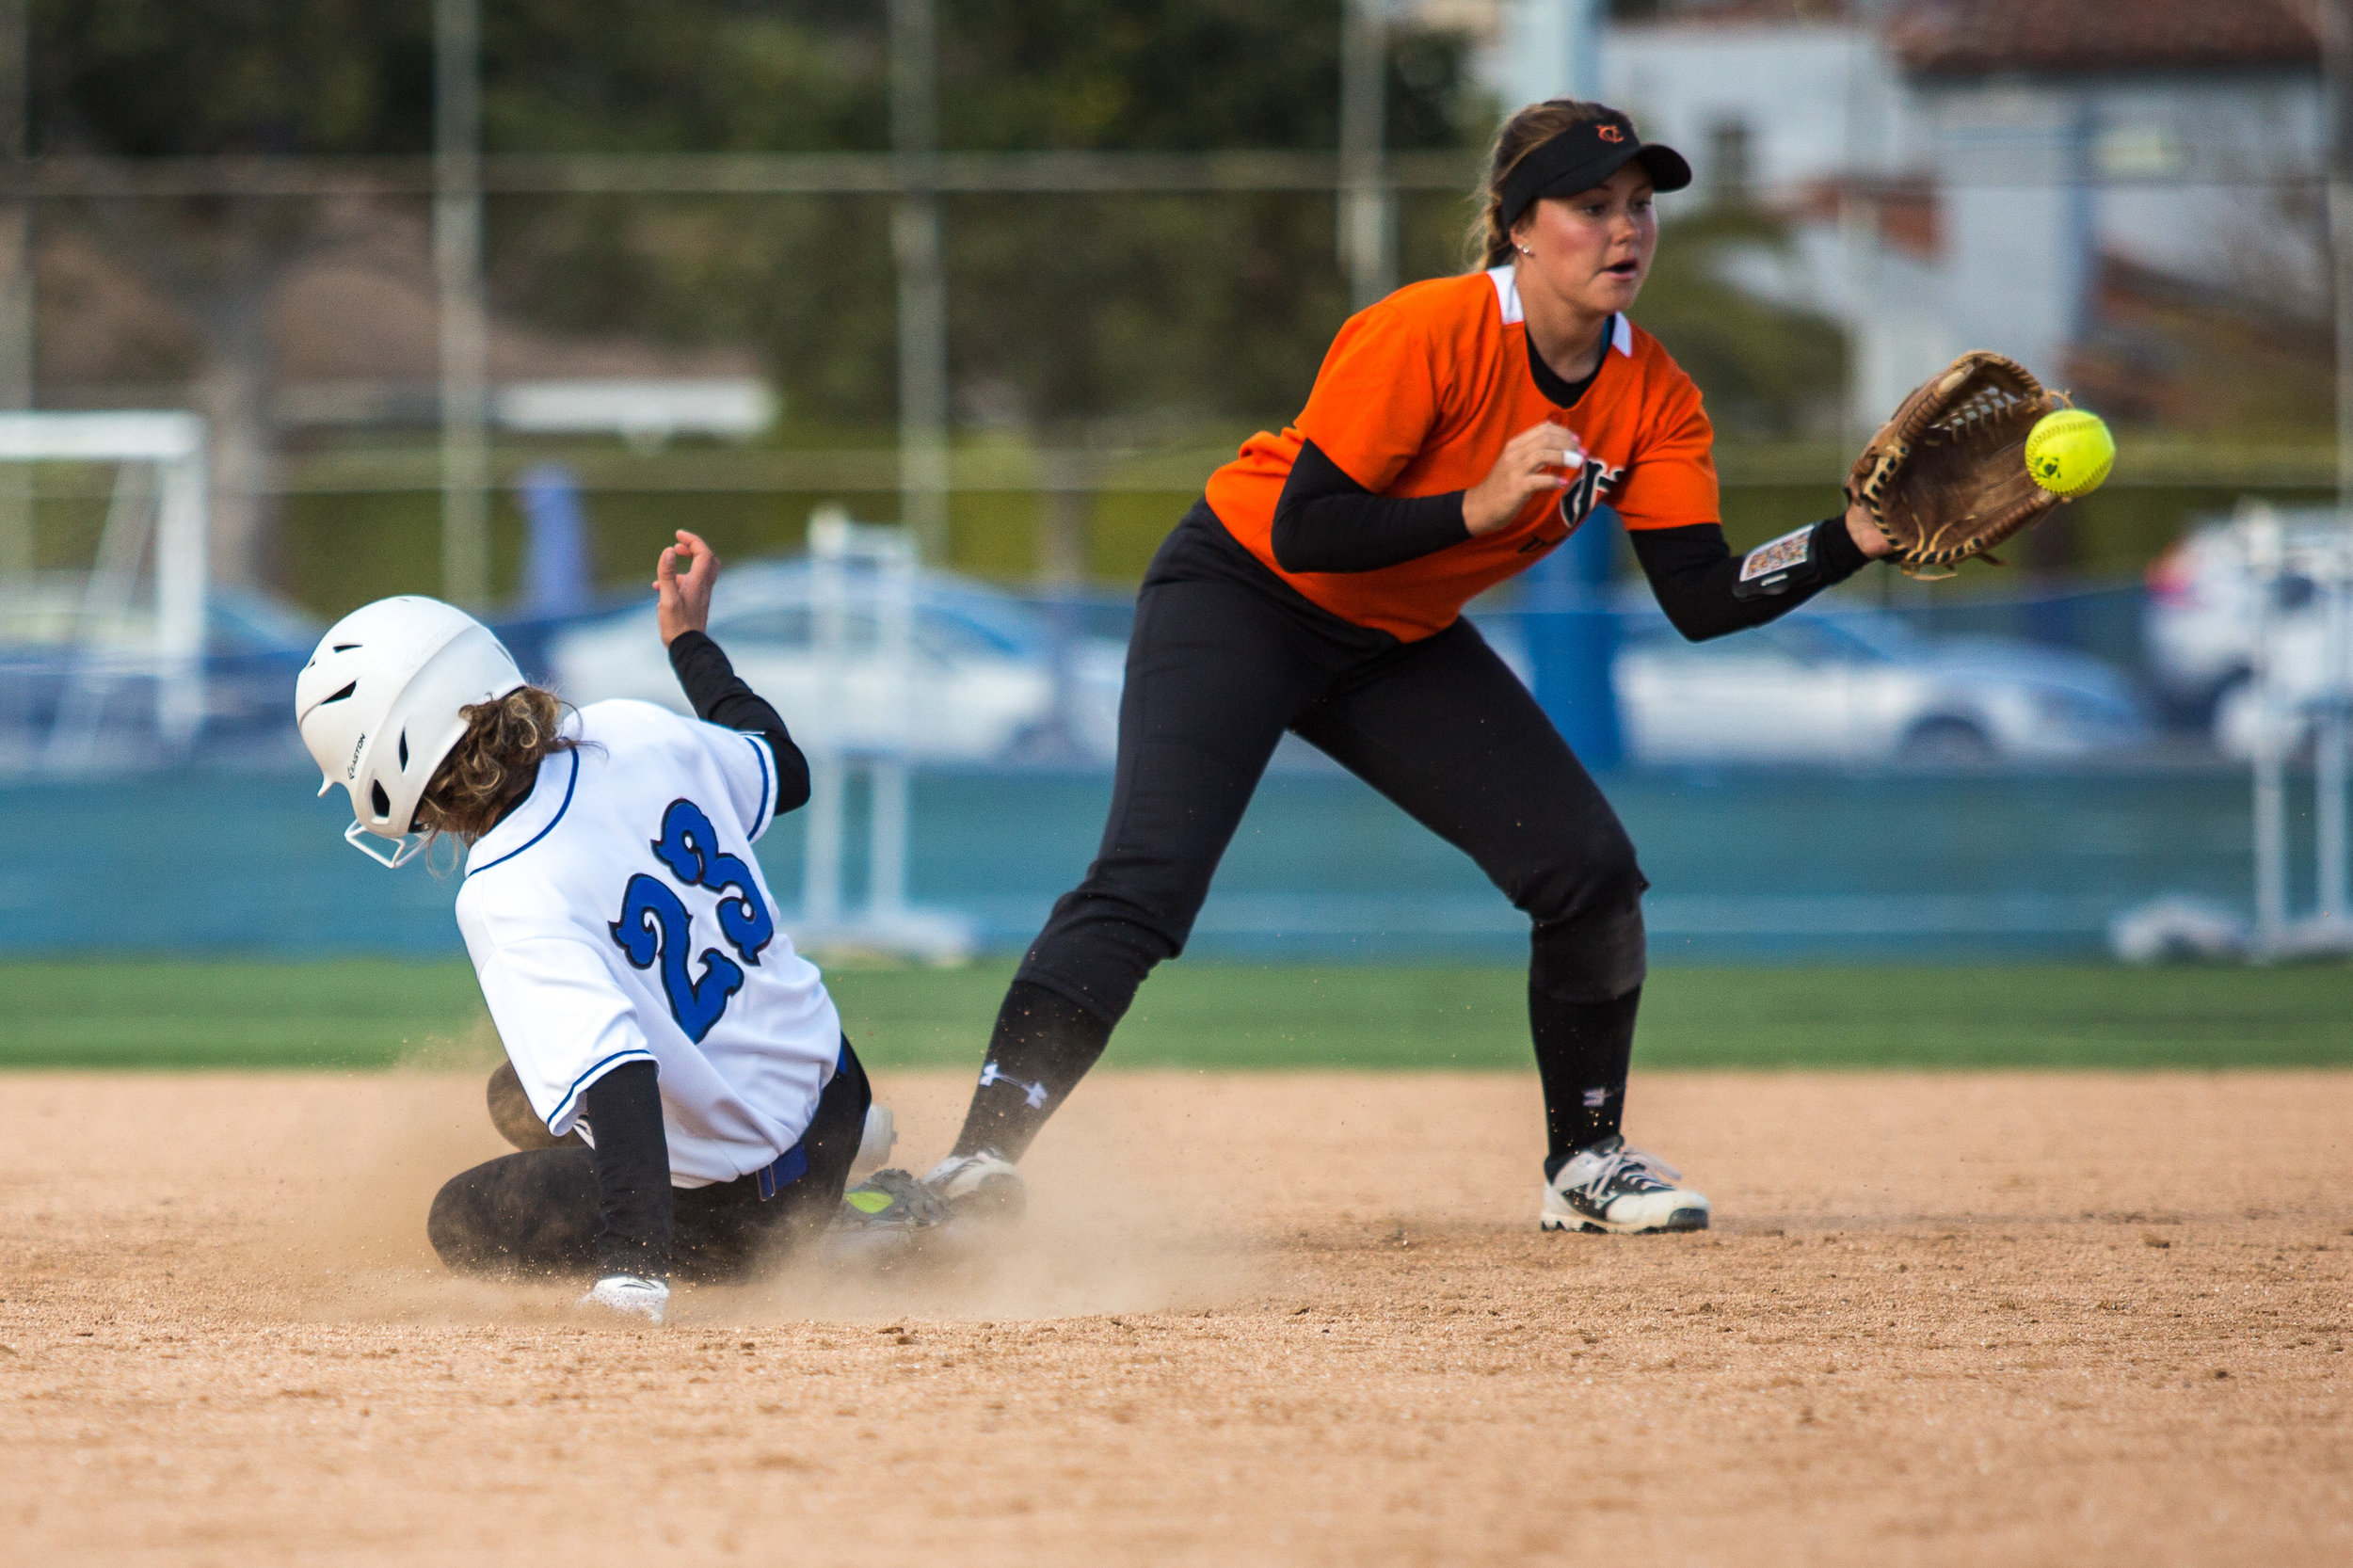 Santa Monica College Corsair freshman Taylor Liebesman #23 (left, white) successfully slides into 2nd base as Ventura College Pirate freshman second short stop Danielle Carmona #13 (right, red) receives the ball from in-field during the bottom of the third at the Corsair Field in Santa Monica, California, on Tuesday, February 28, 2017. The Corsairs would go on to lose the game 0-14 against the Ventura College Pirates. (Corsair Photo: Matthew Martin)